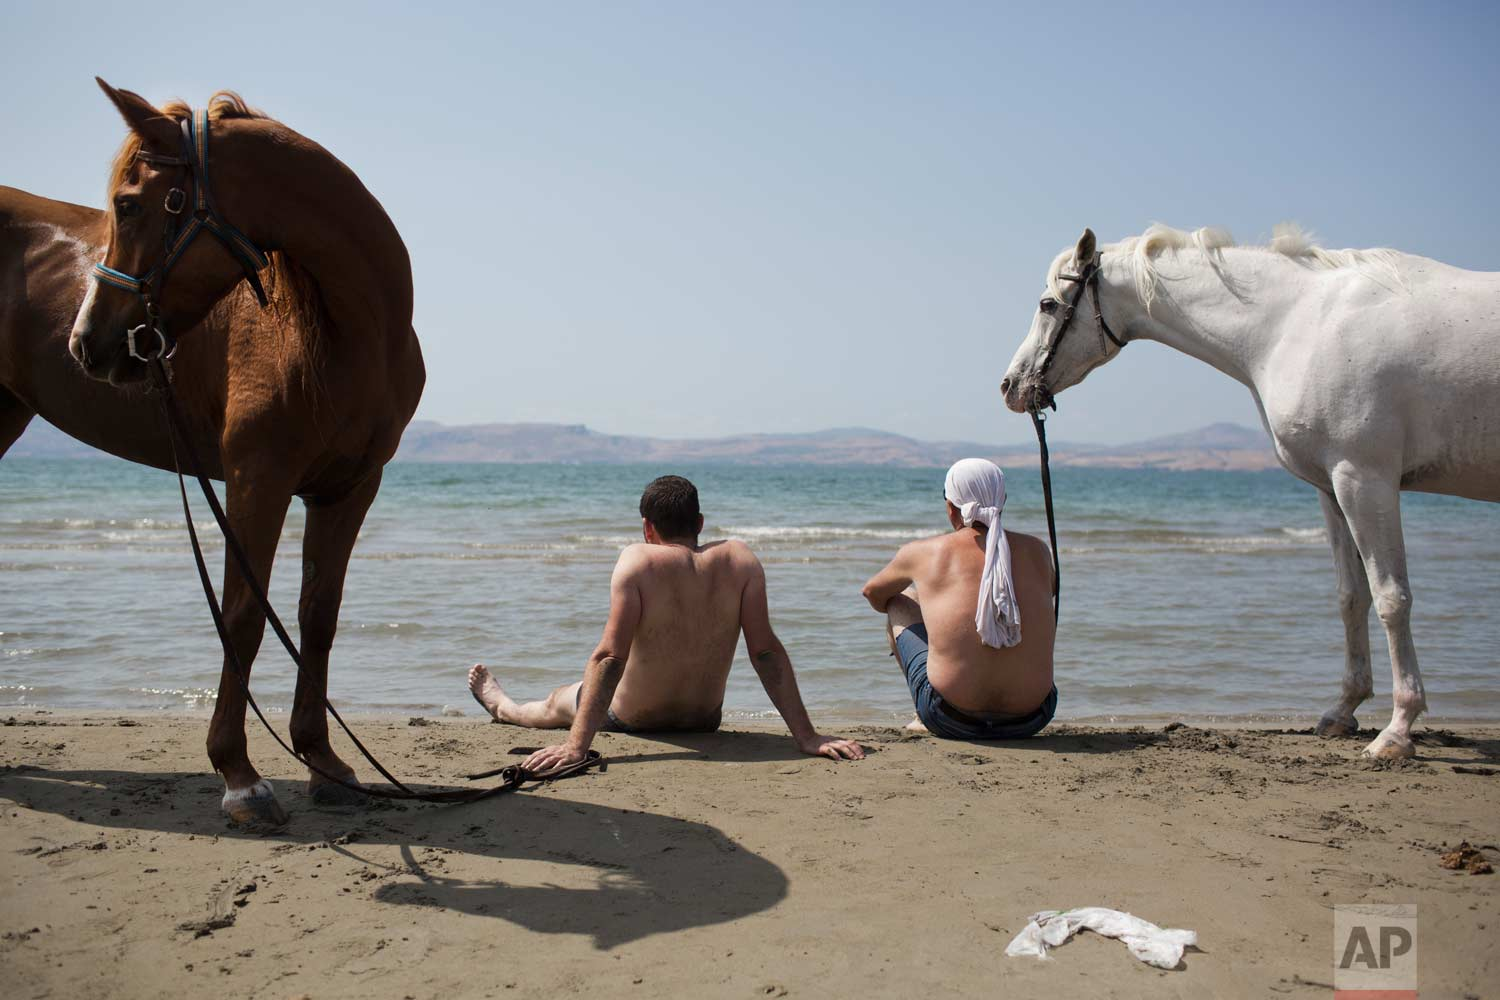 In this Saturday, Sept. 23, 2017 photo, Israeli Druse men sit with their horses on the shores of the Sea of Galilee near the northern Israeli Kibbutz of Ein Gev. (AP Photo/Oded Balilty)